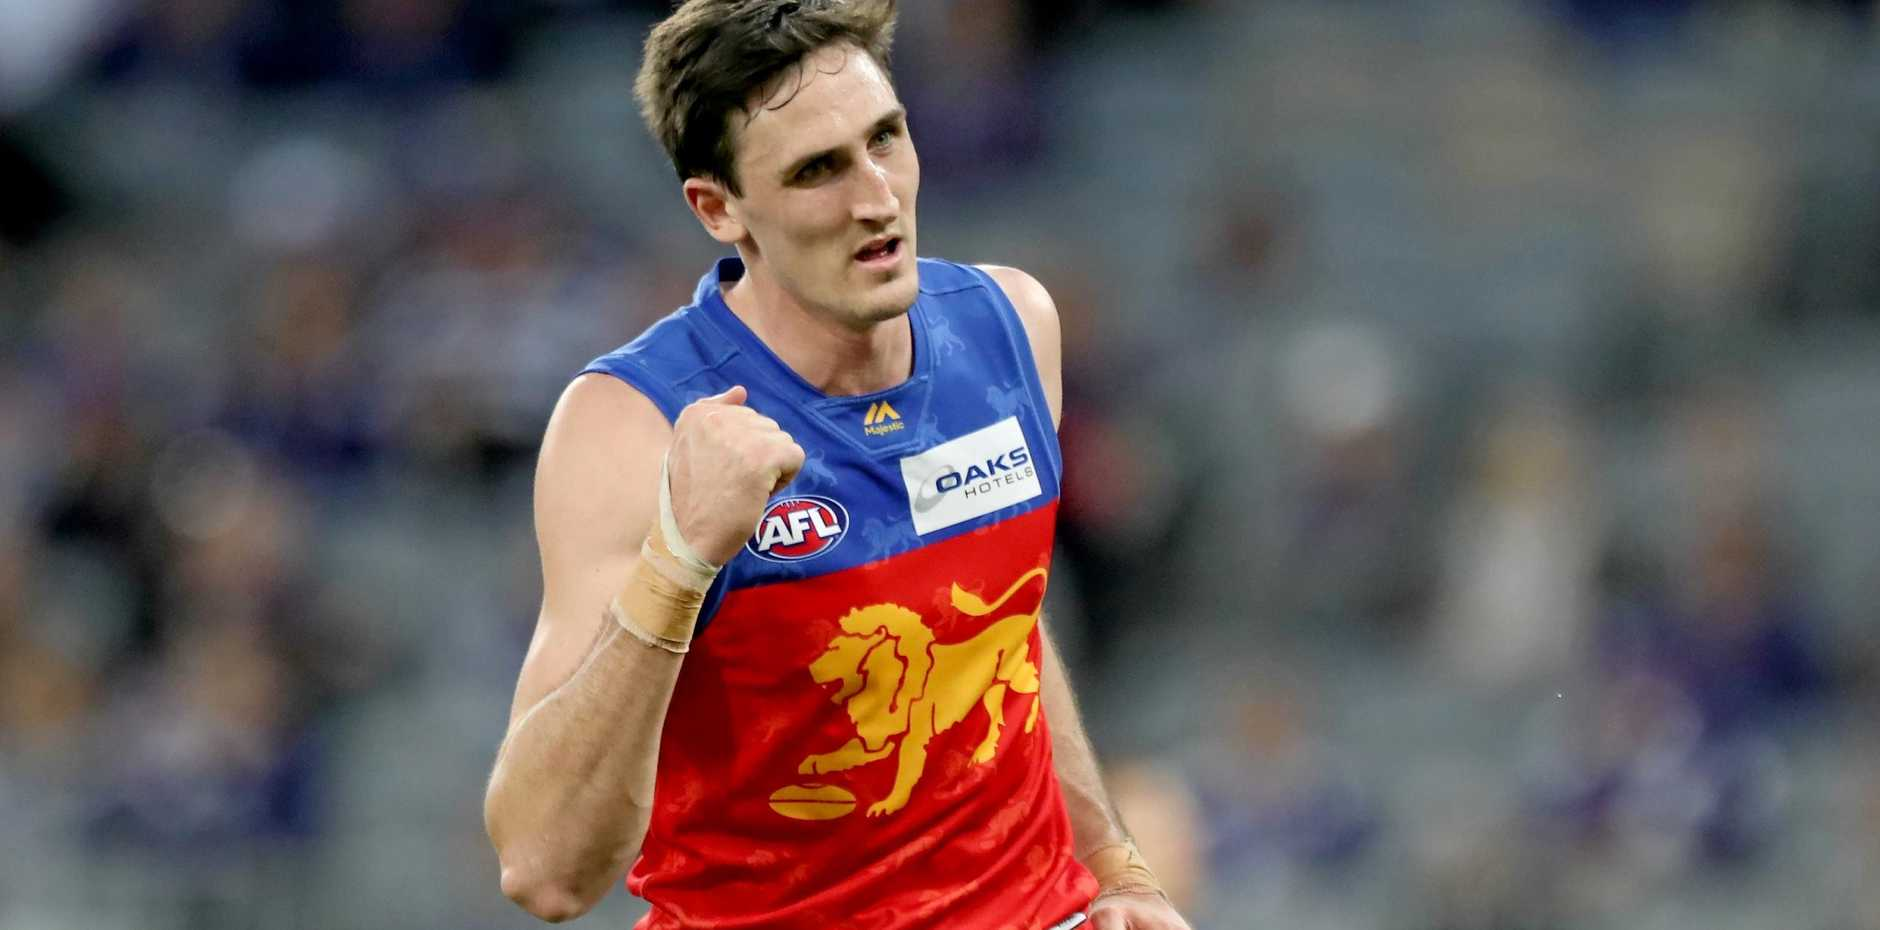 Oscar McInerney celebrates after kicking a goal against Fremantle in Perth last Sunday. Picture: Richard Wainwright/AAP